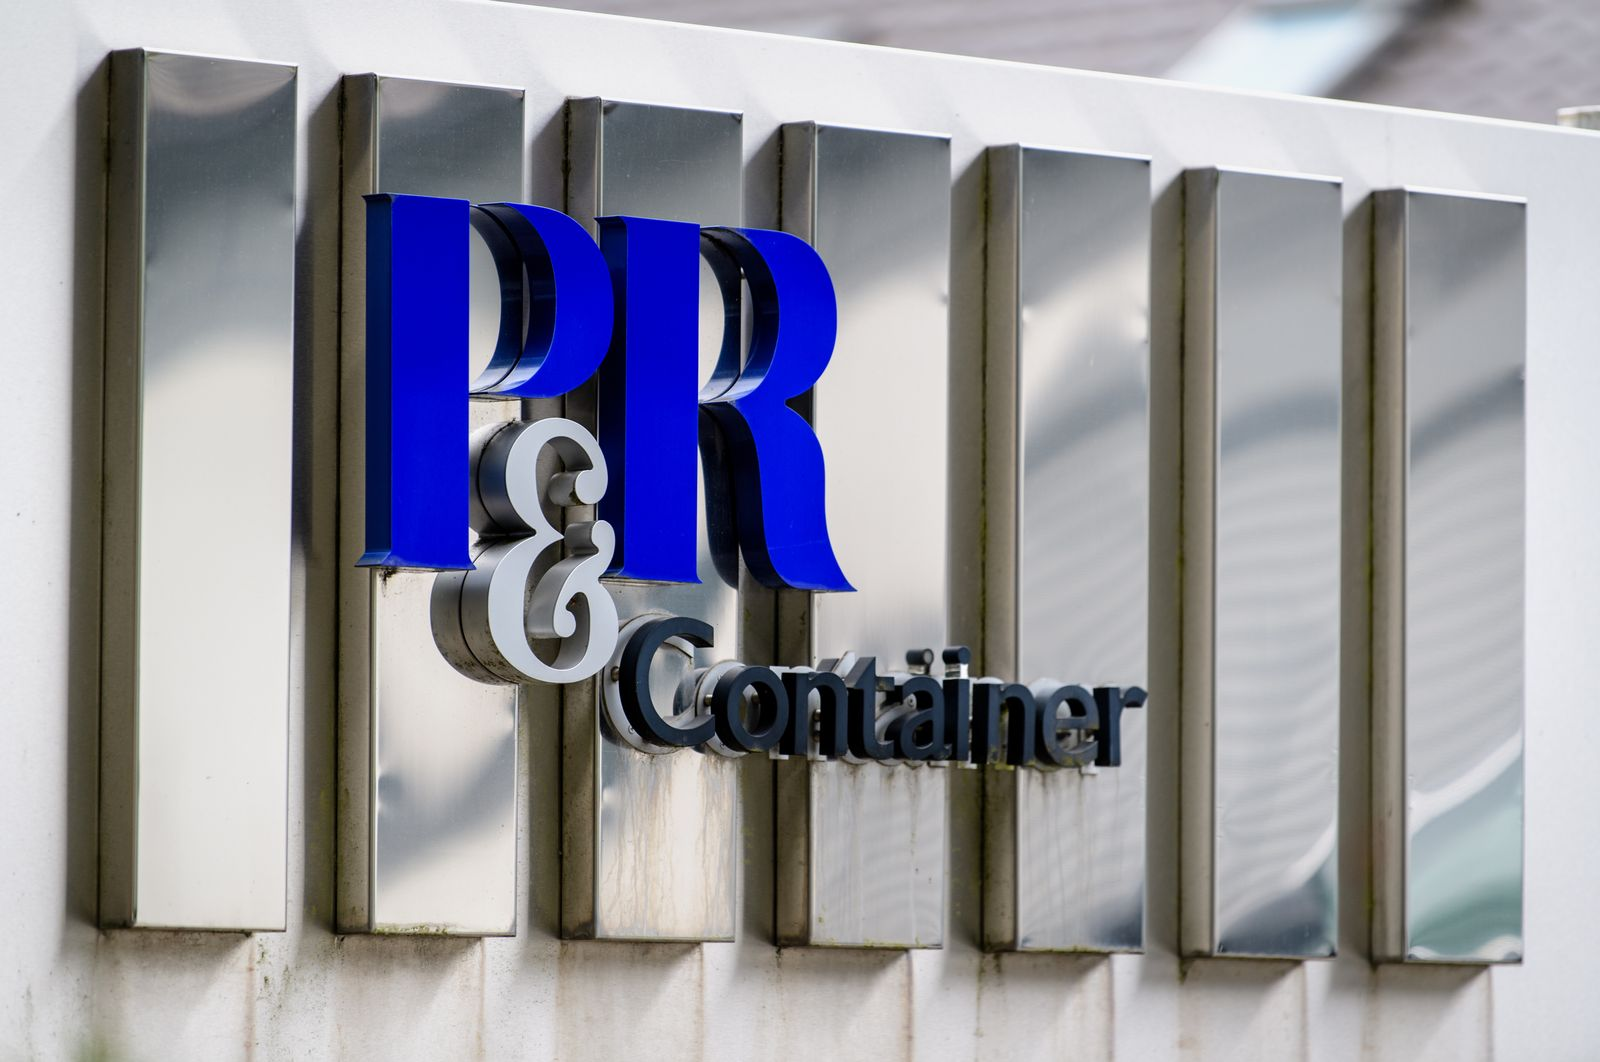 P&R / PundR / Containerinvestmentfirma